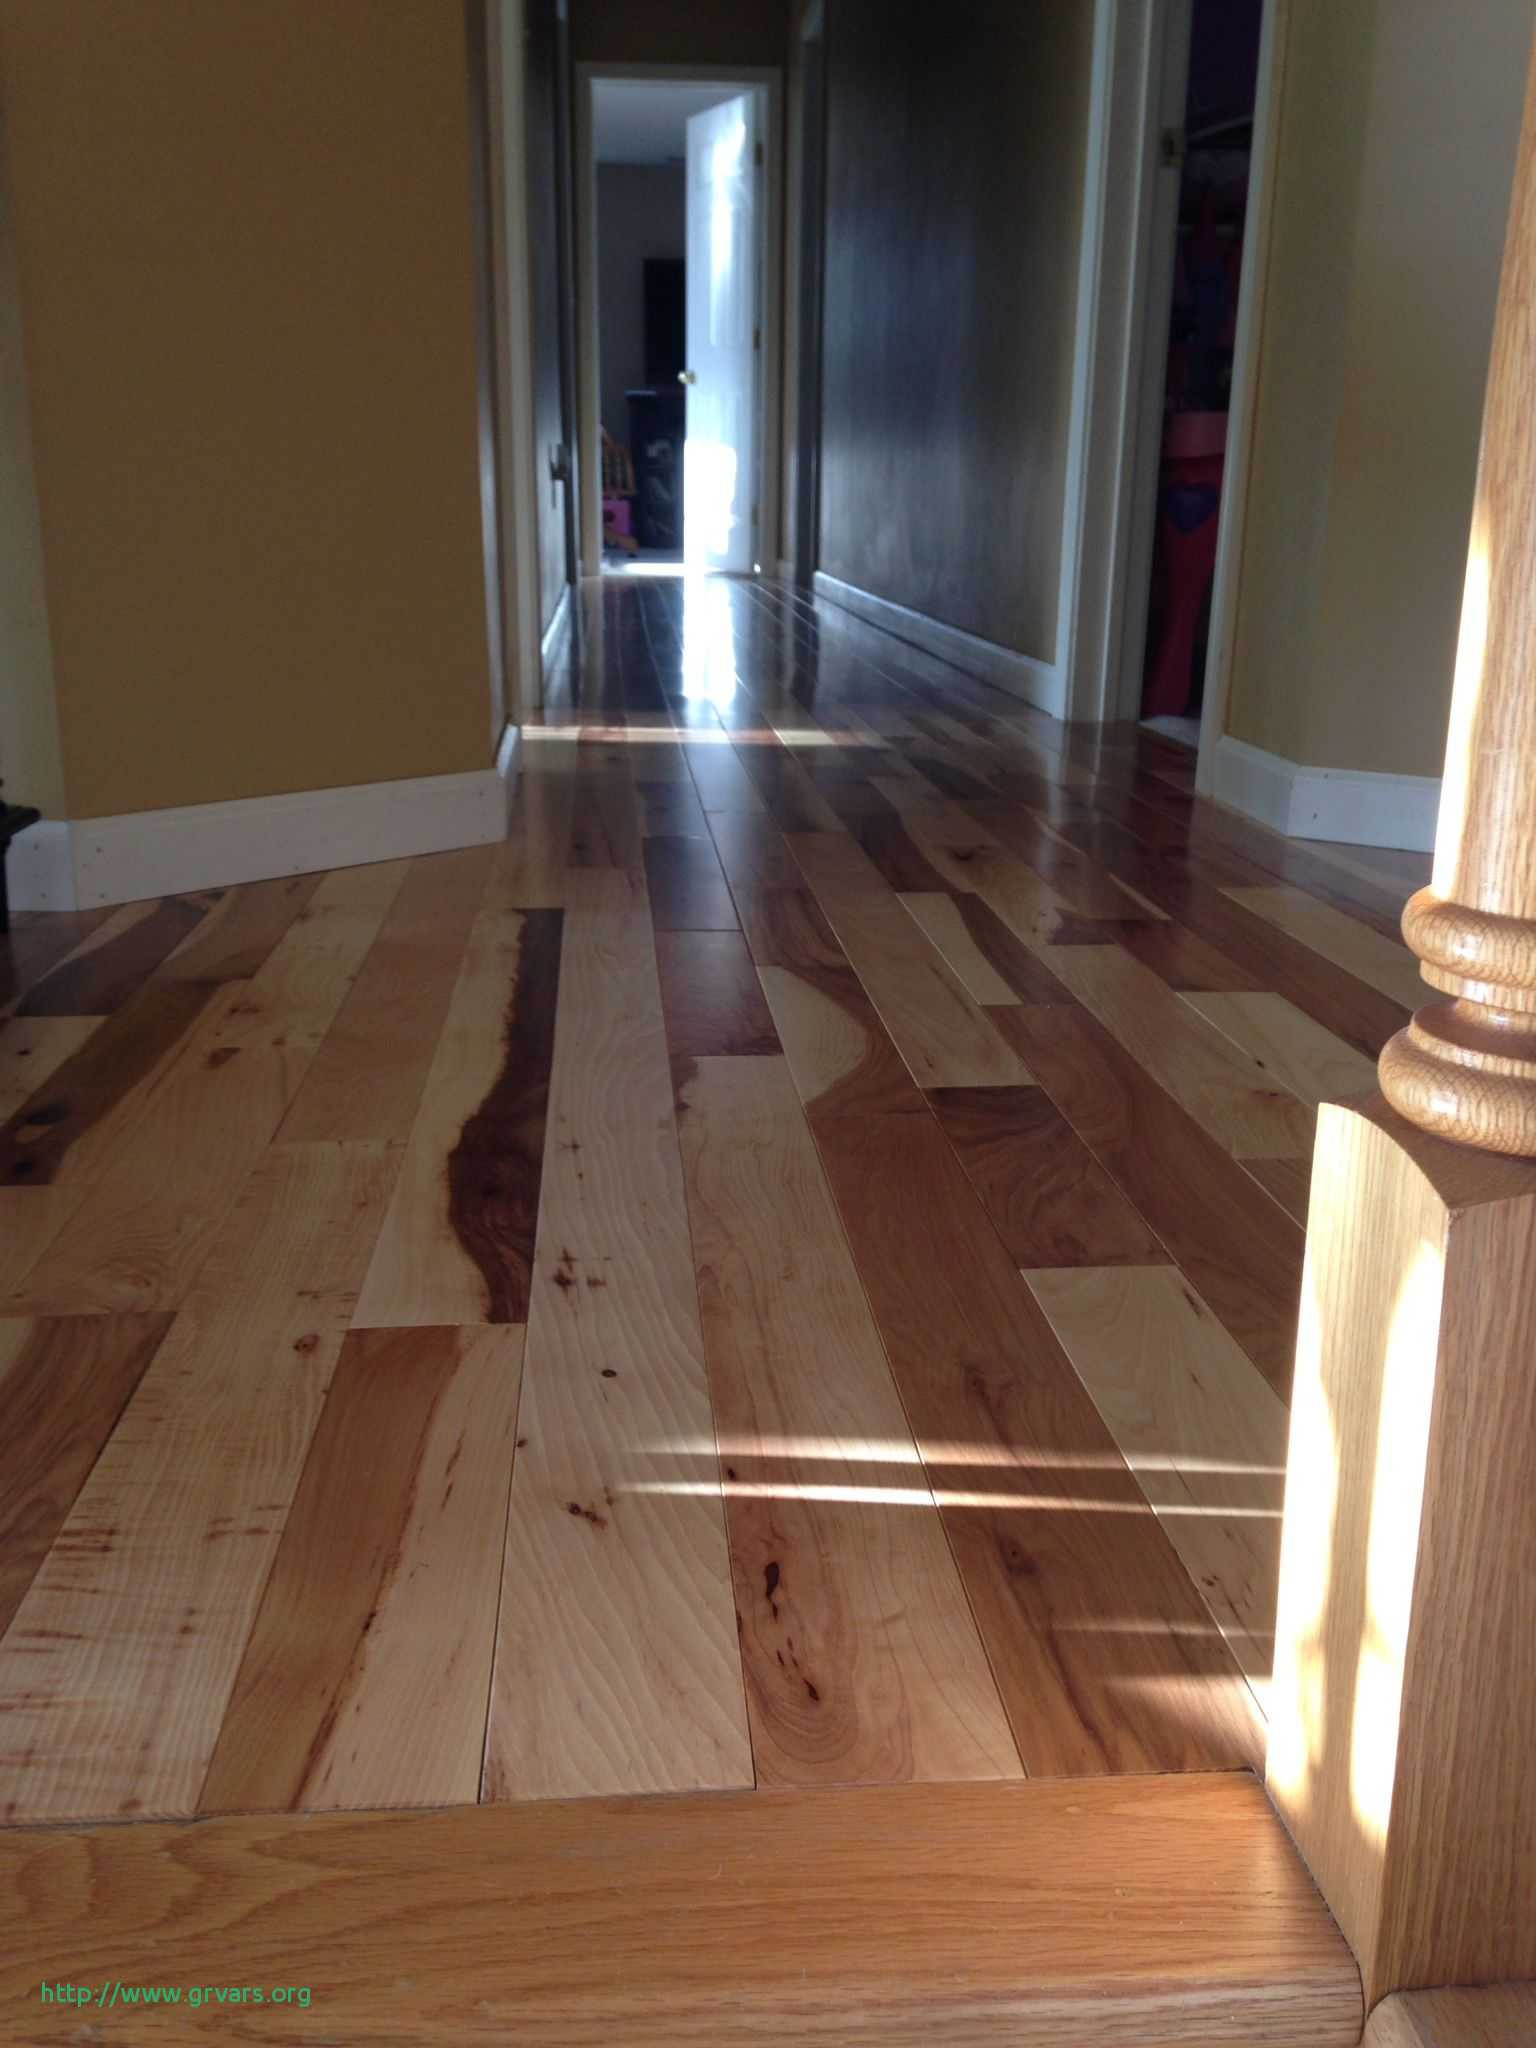 Tropical Walnut Hardwood Flooring Of 21 Luxe How to Clean Prefinished Hardwood Floors with Vinegar for How to Clean Prefinished Hardwood Floors with Vinegar Luxe somerset solid Character Collection 3 1 4quot